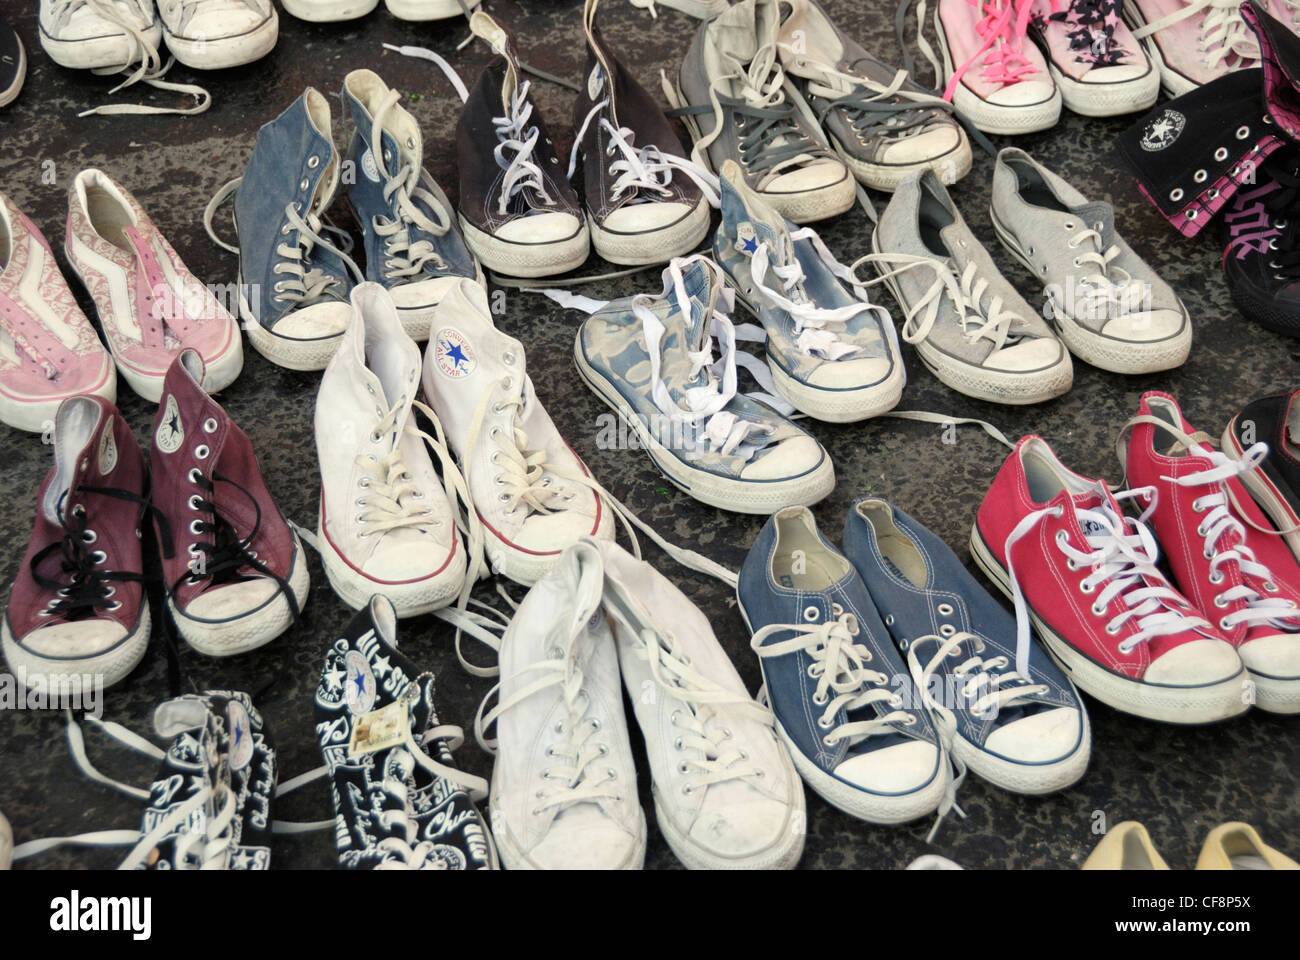 Second hand baseball shoes displayed on a pavement - Stock Image